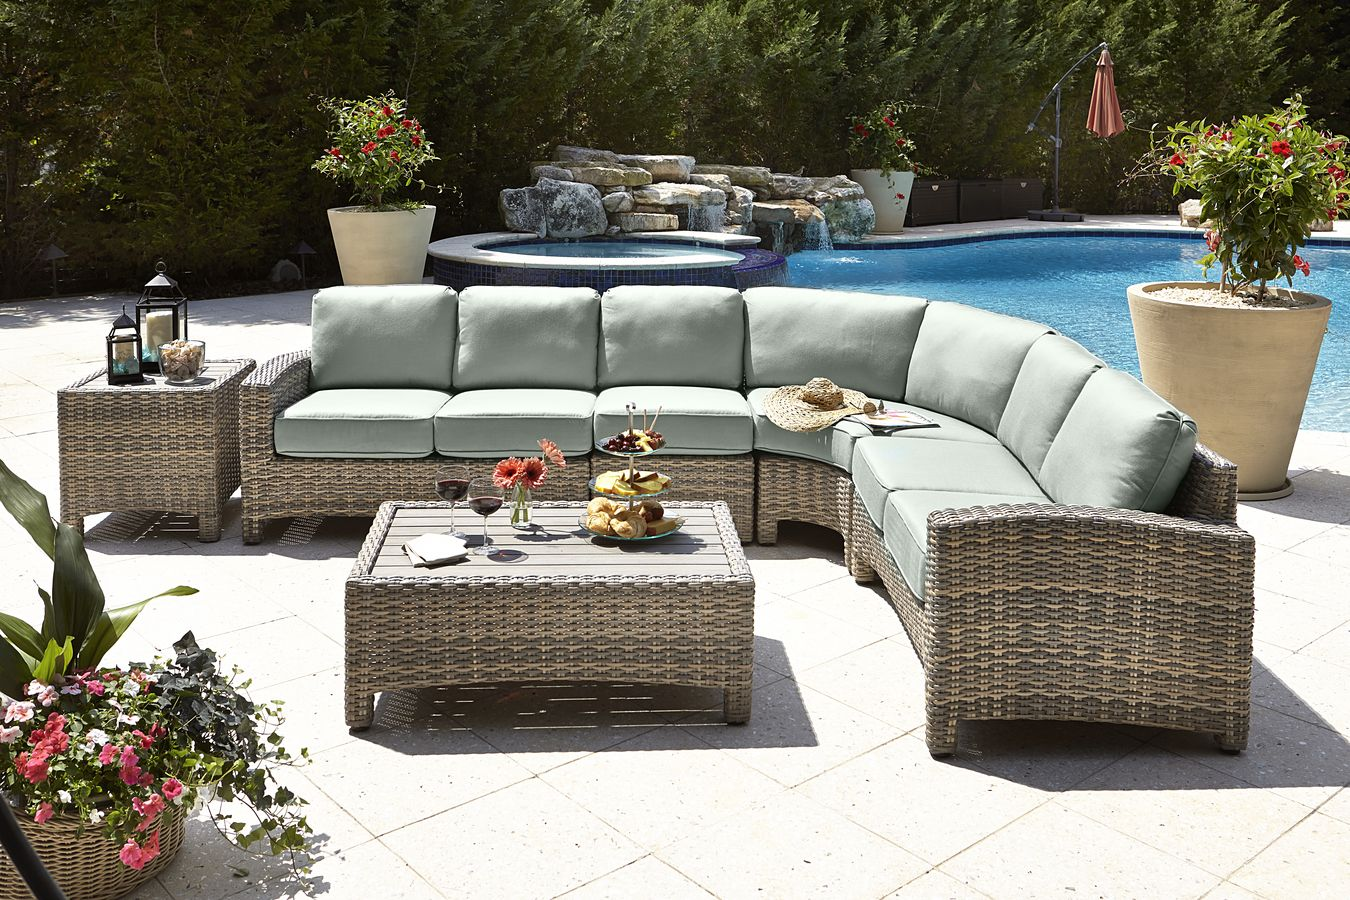 BeachCraft Outdoor Furniture Coming Exclusively To ReCreations In April!